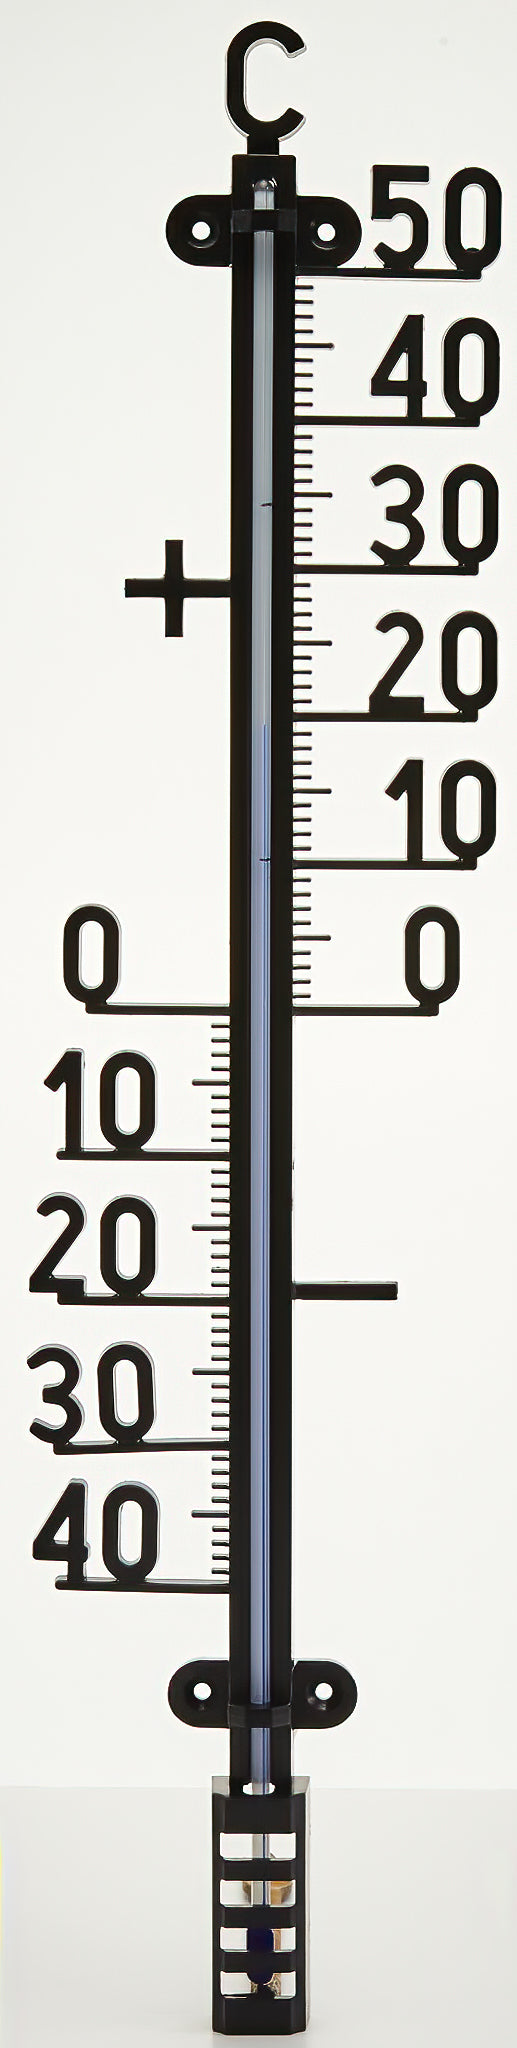 Outdoor Classic Thermometer